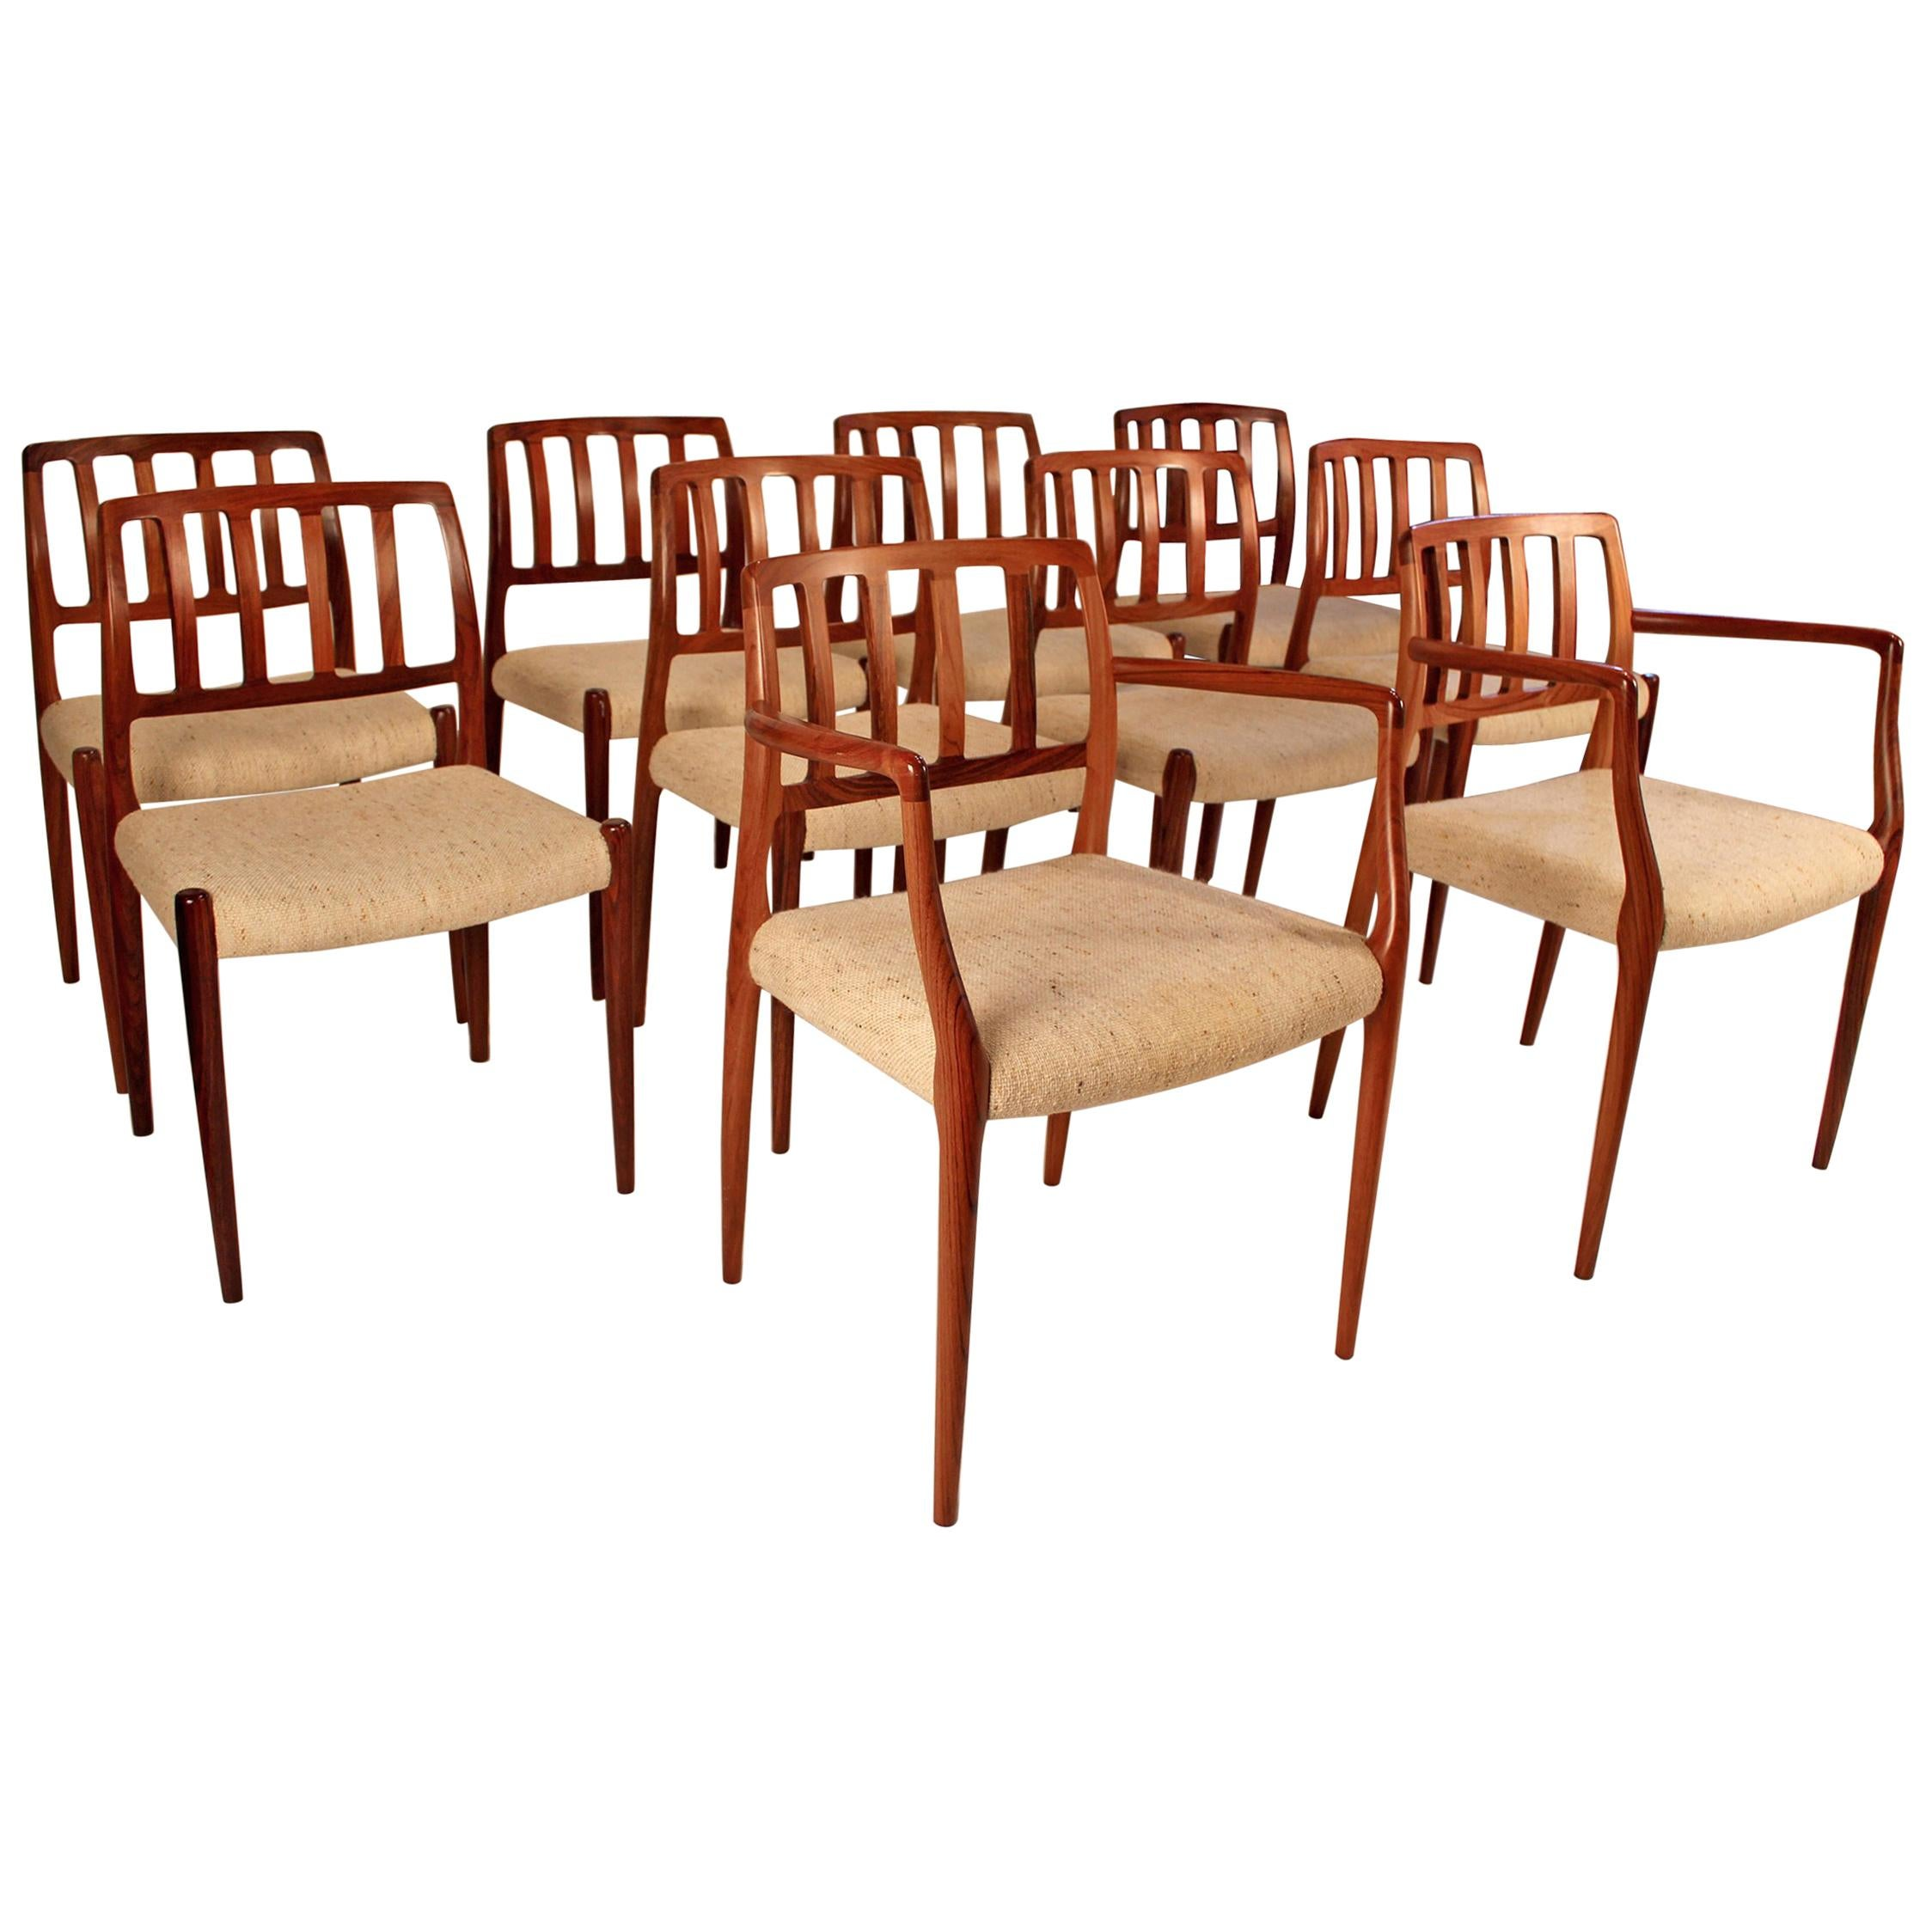 Set of Ten Dining Chairs in East Indian Rosewood by Niels Otto Moller